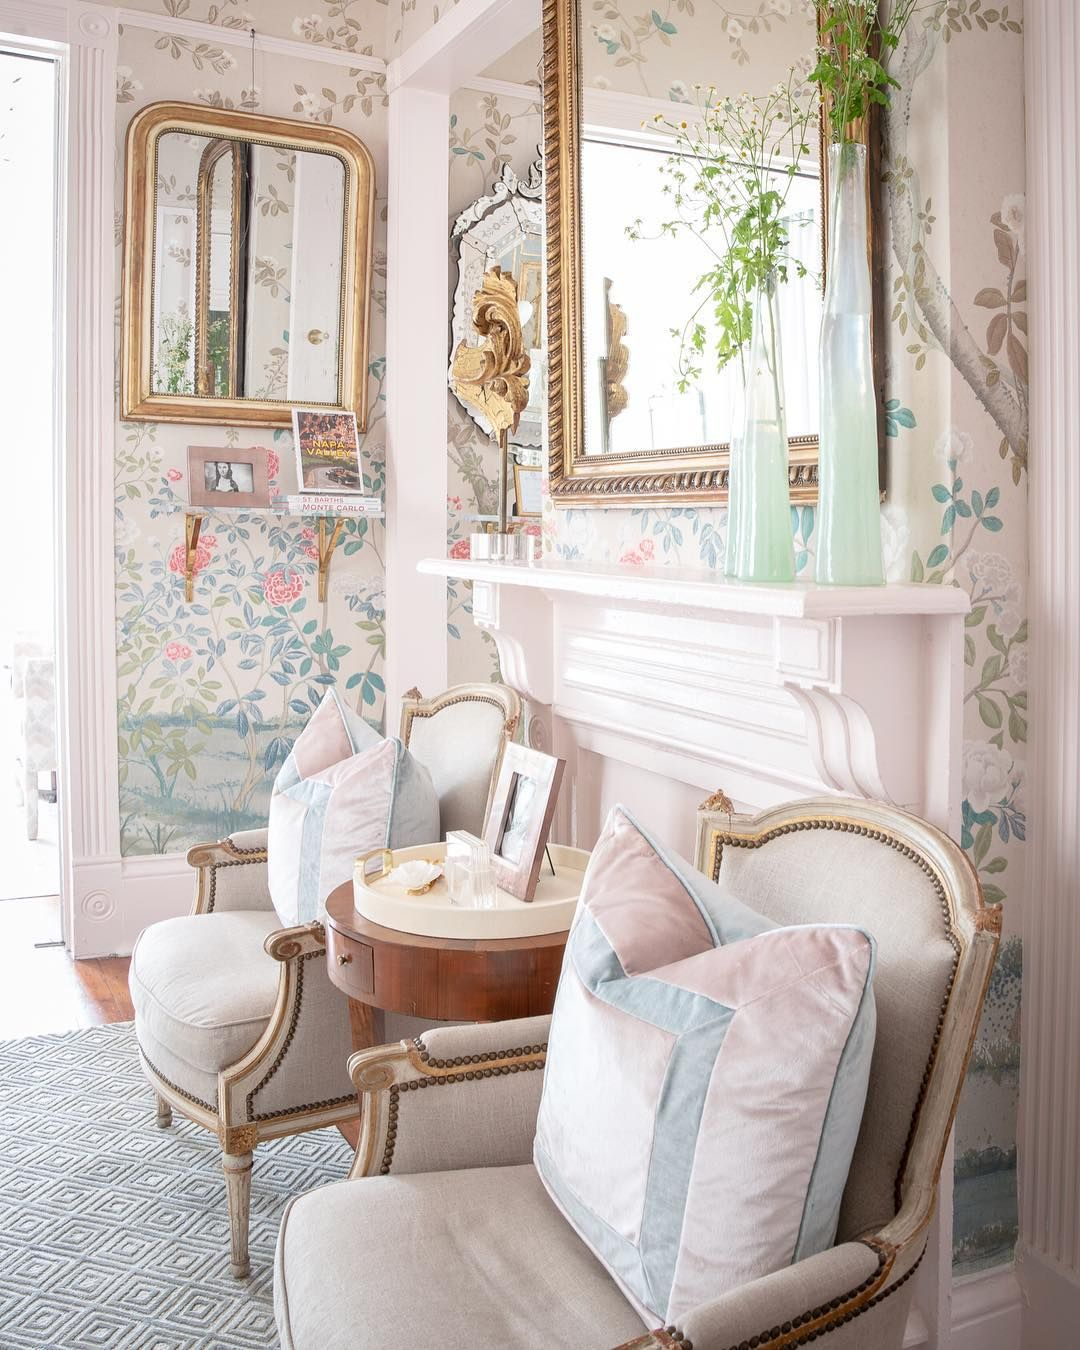 Maison Decor: French Country: Enchanting Yellow & White